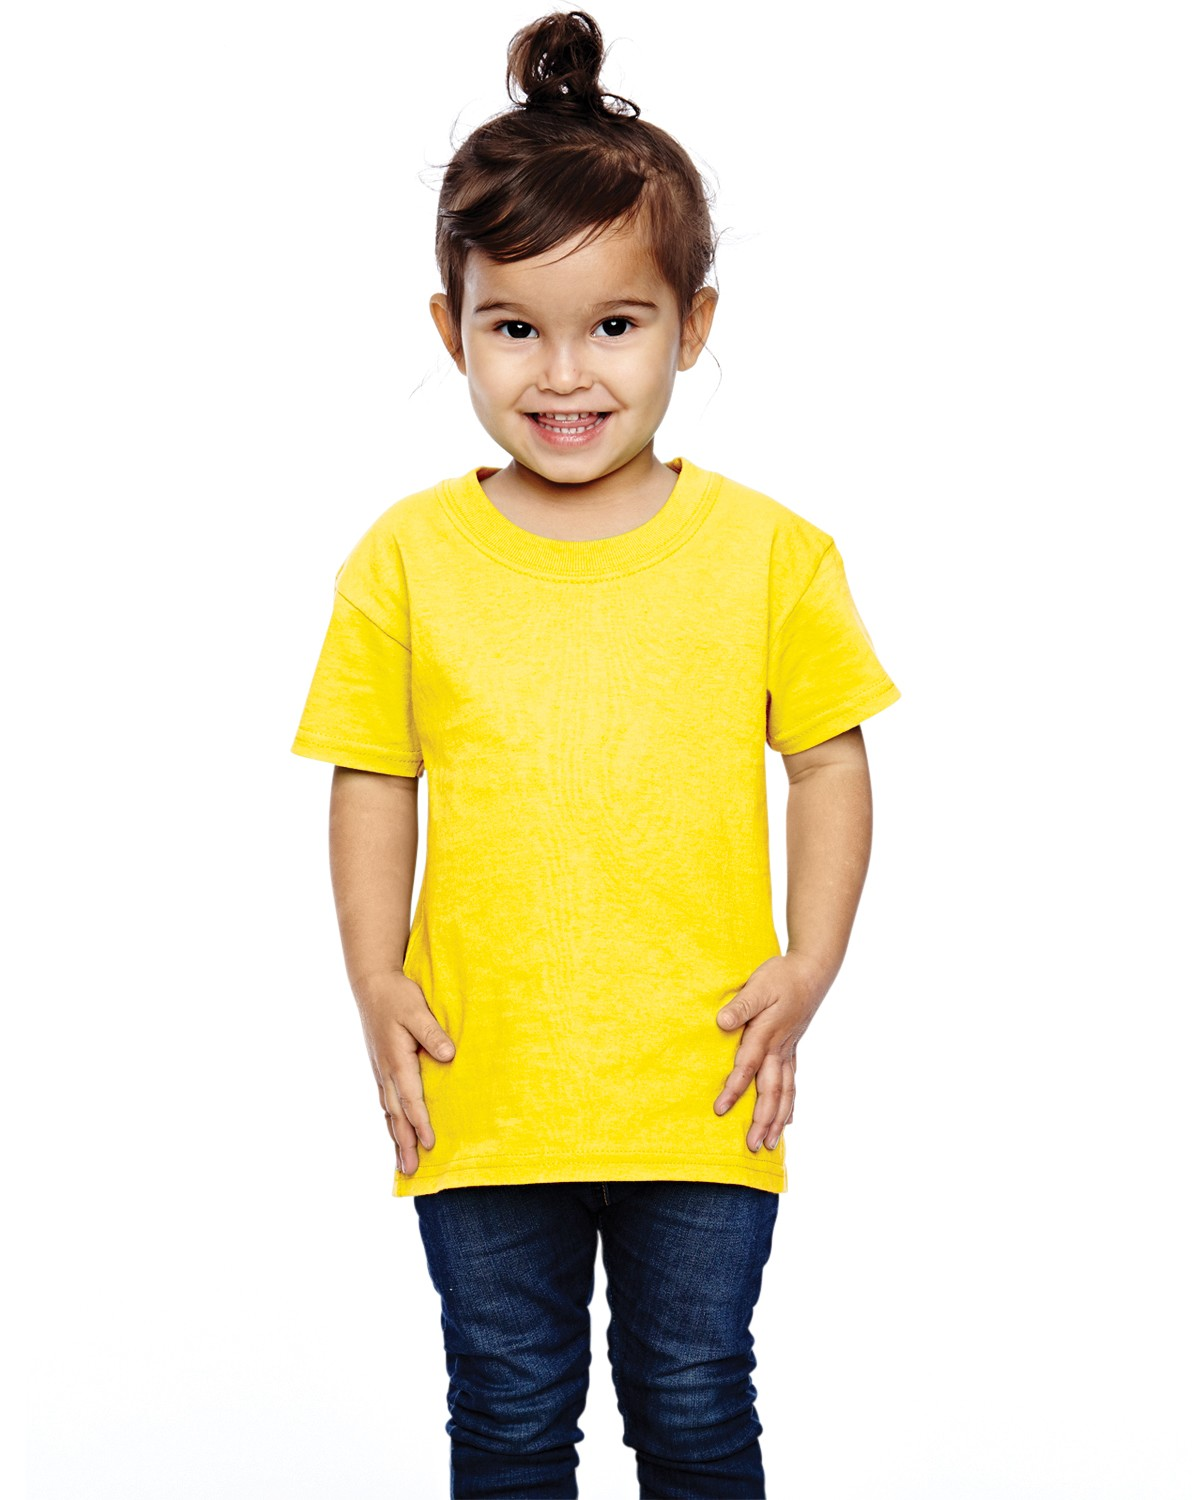 T3930 Fruit of the Loom YELLOW